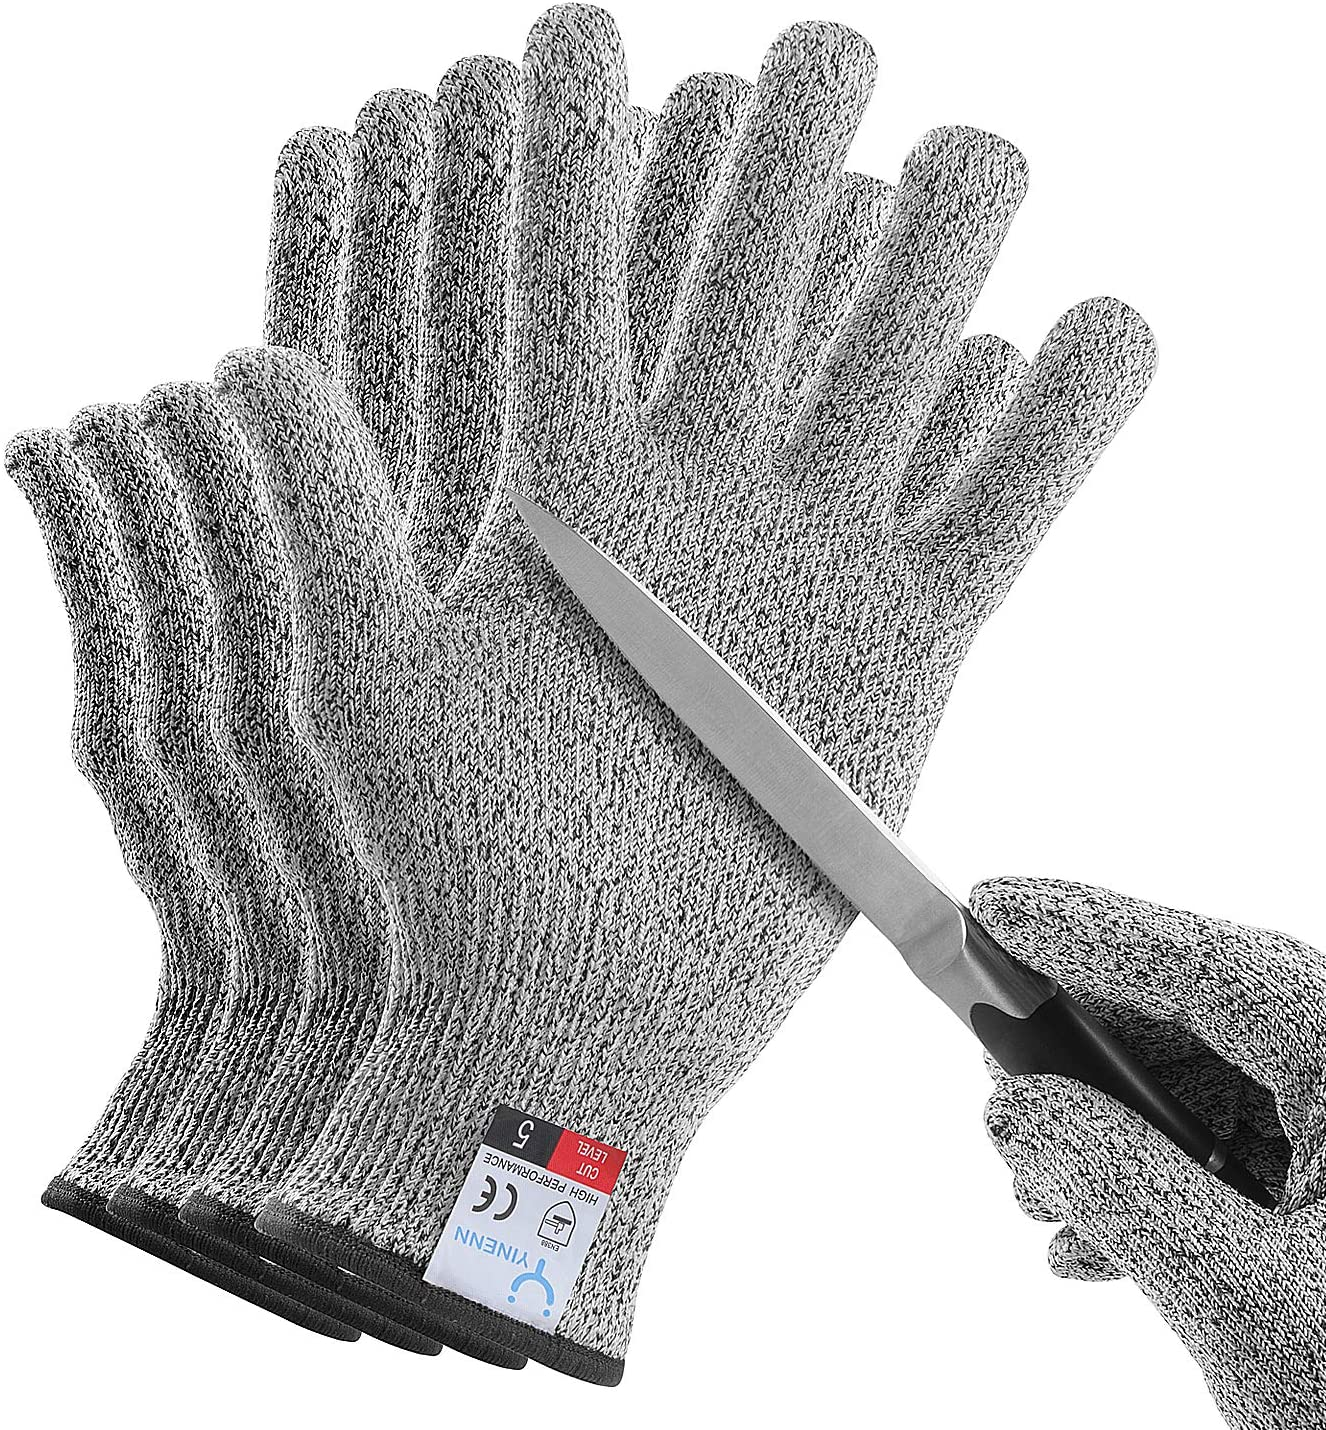 YINENN 2 Pairs 4 Gloves Opening large release sale Resistant Grade Food Cut 25% OFF Leve